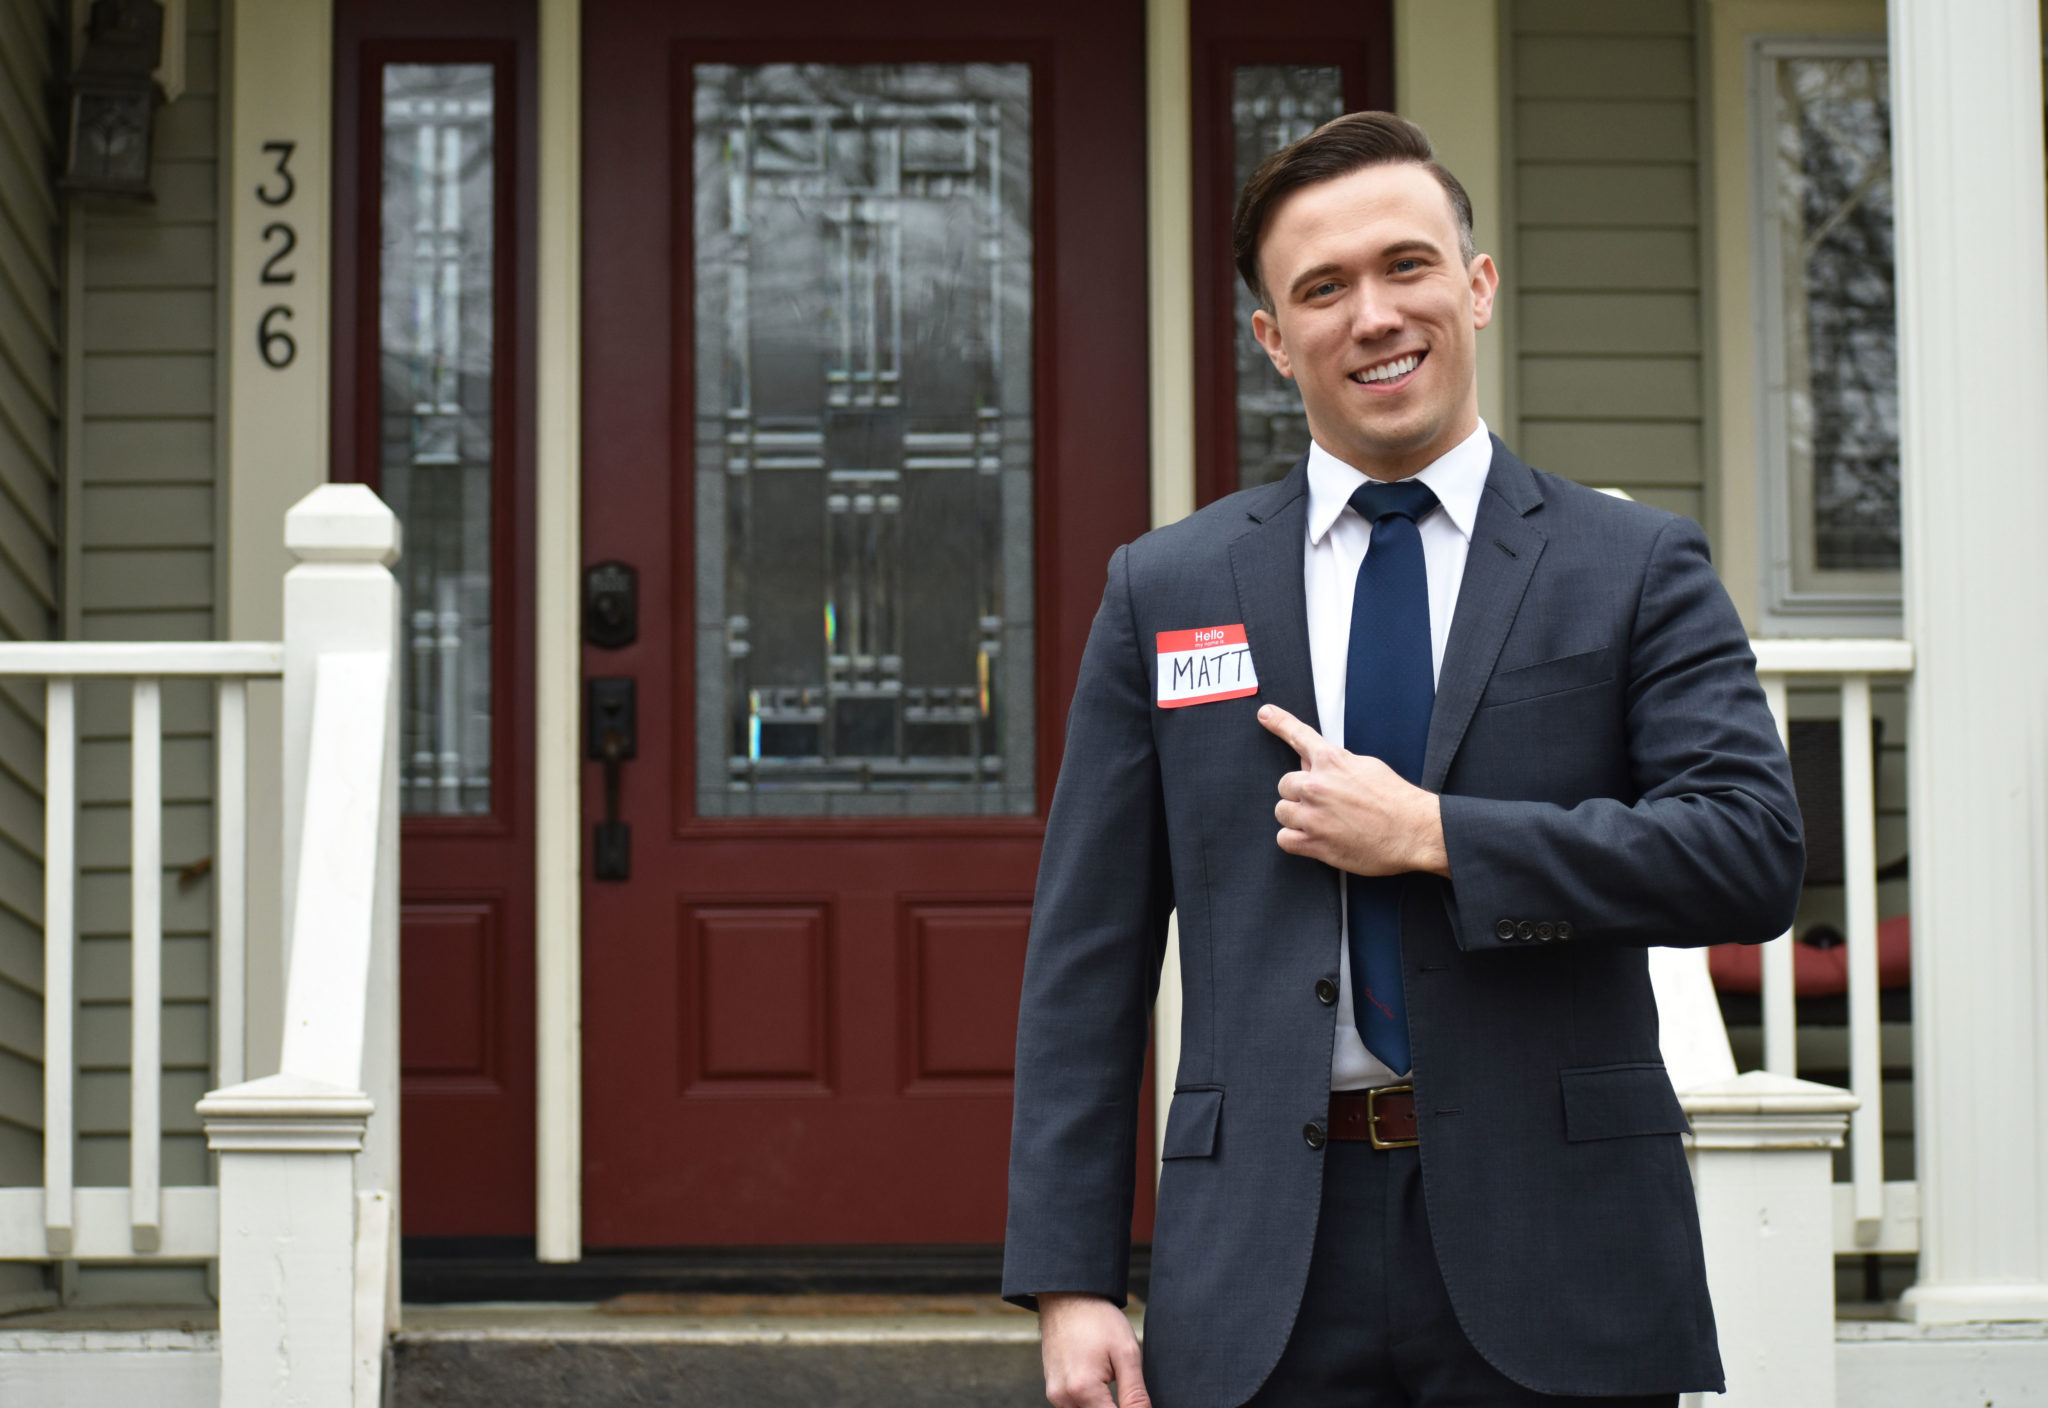 Realtor in a suit standing at the front door of home for sell while pointing to his name tag that states